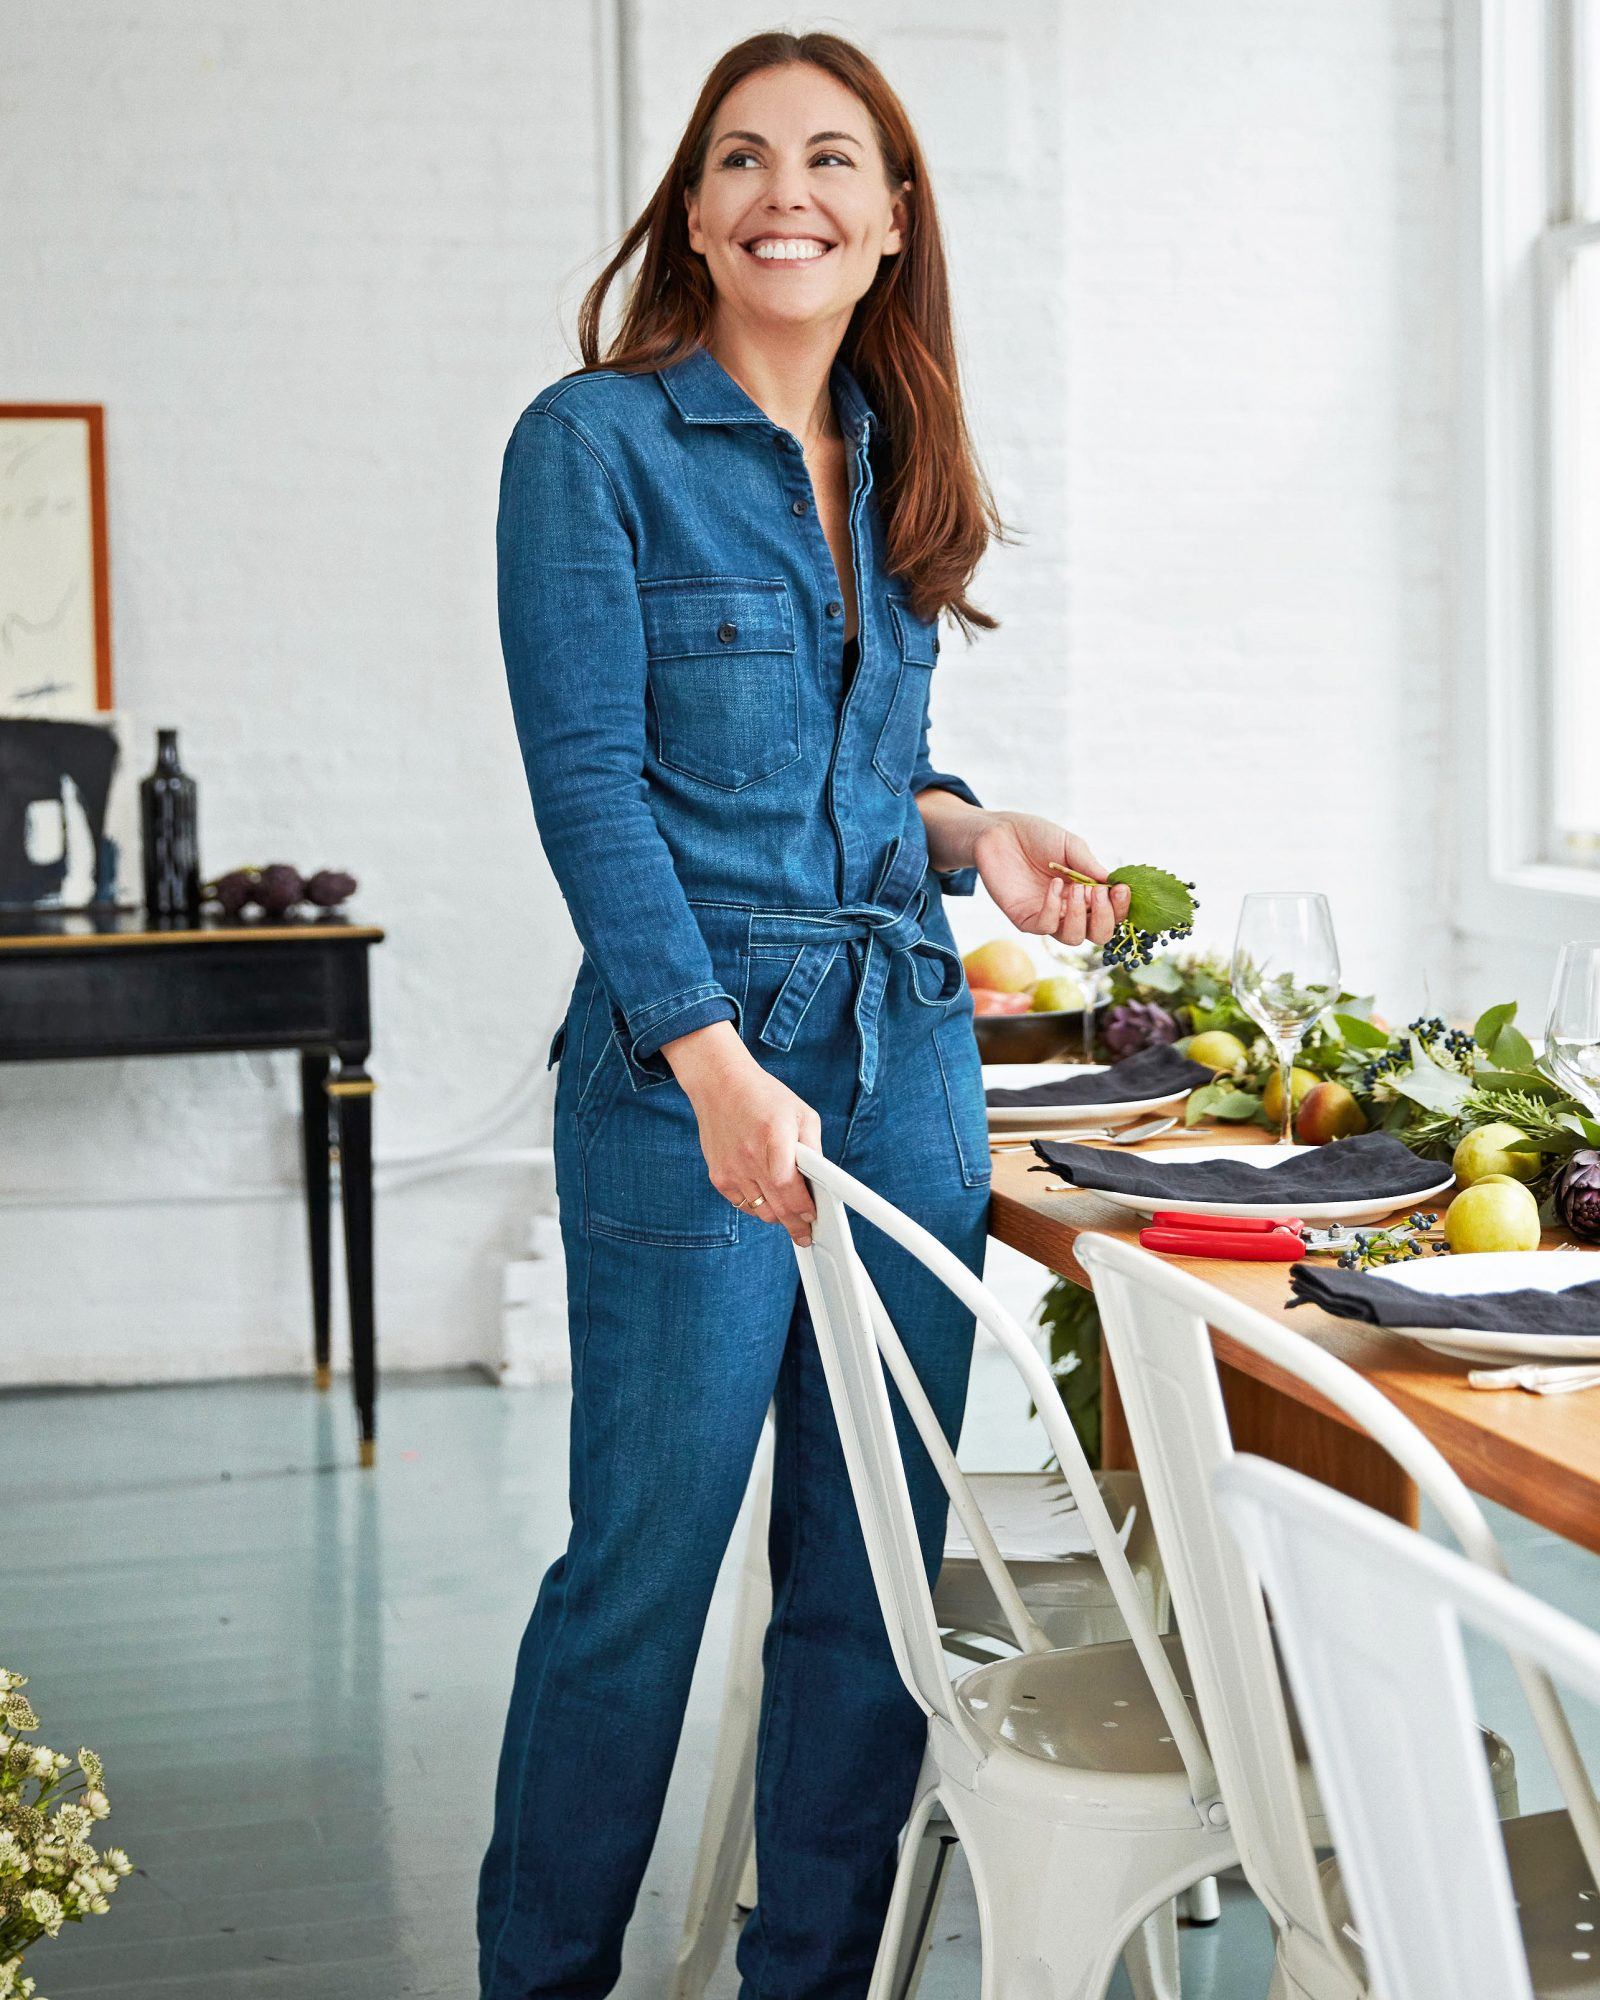 alison cayne serving table